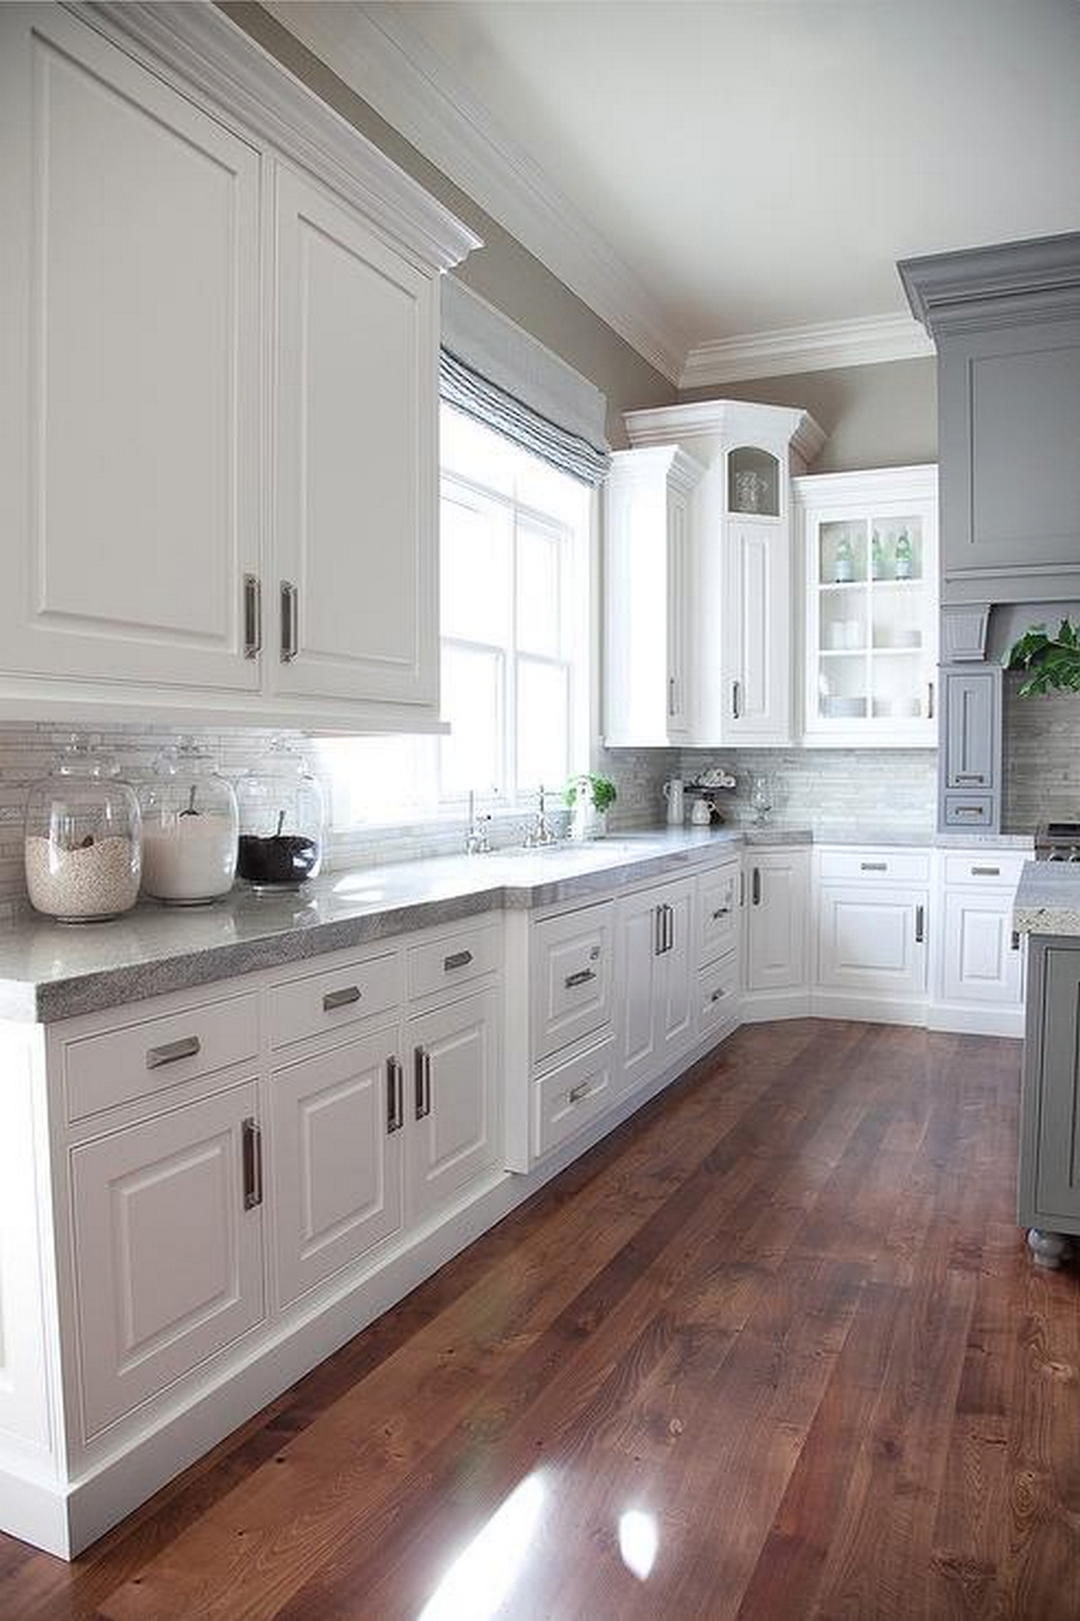 Charmant Pretty White Kitchen Design Ideas!